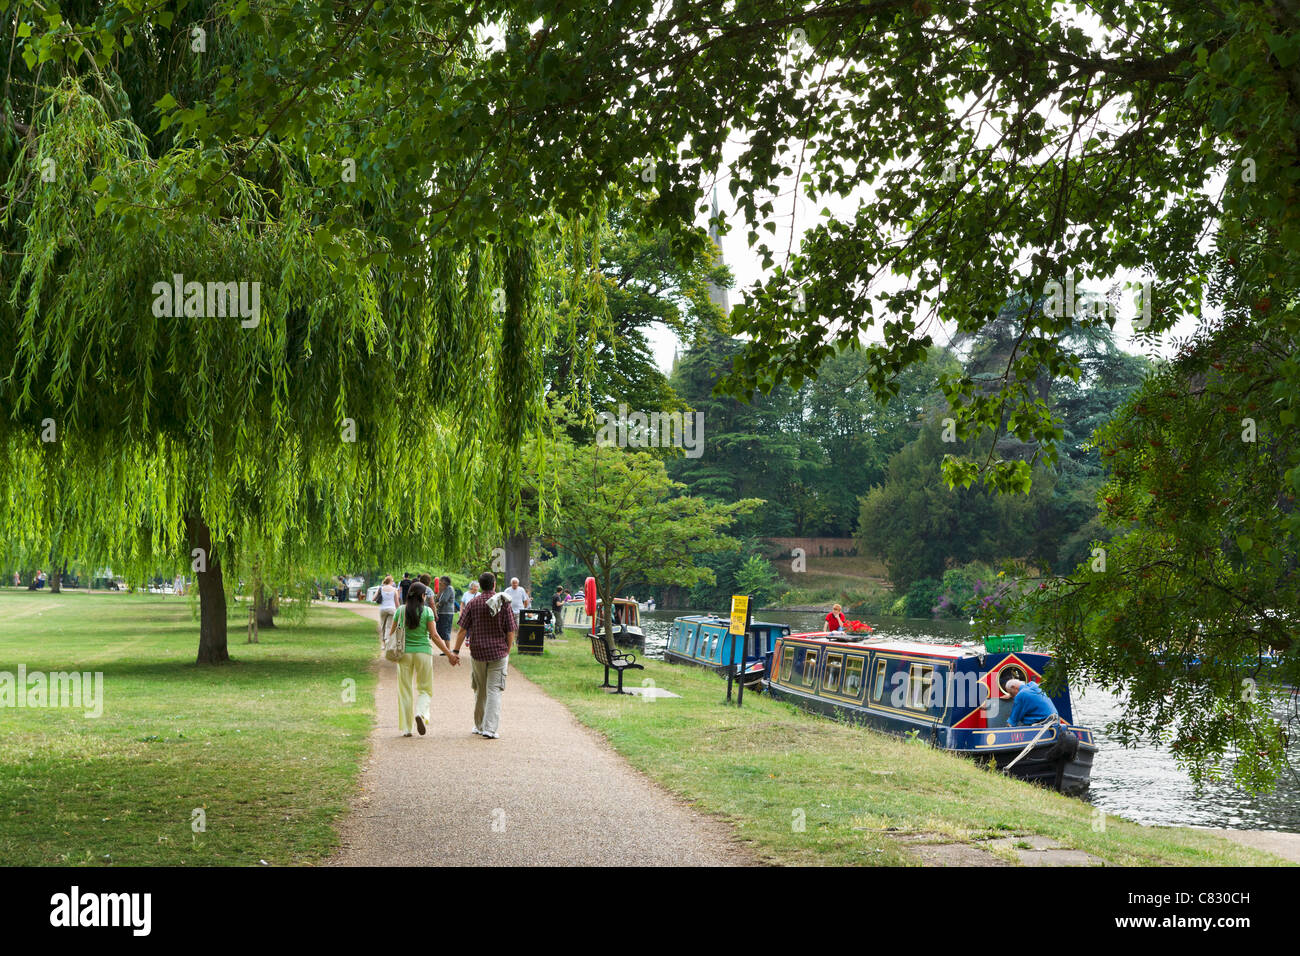 Couple walking hand in hand along the banks of the River Avon, Stratford-upon-Avon, Warwickshire, England, UK - Stock Image